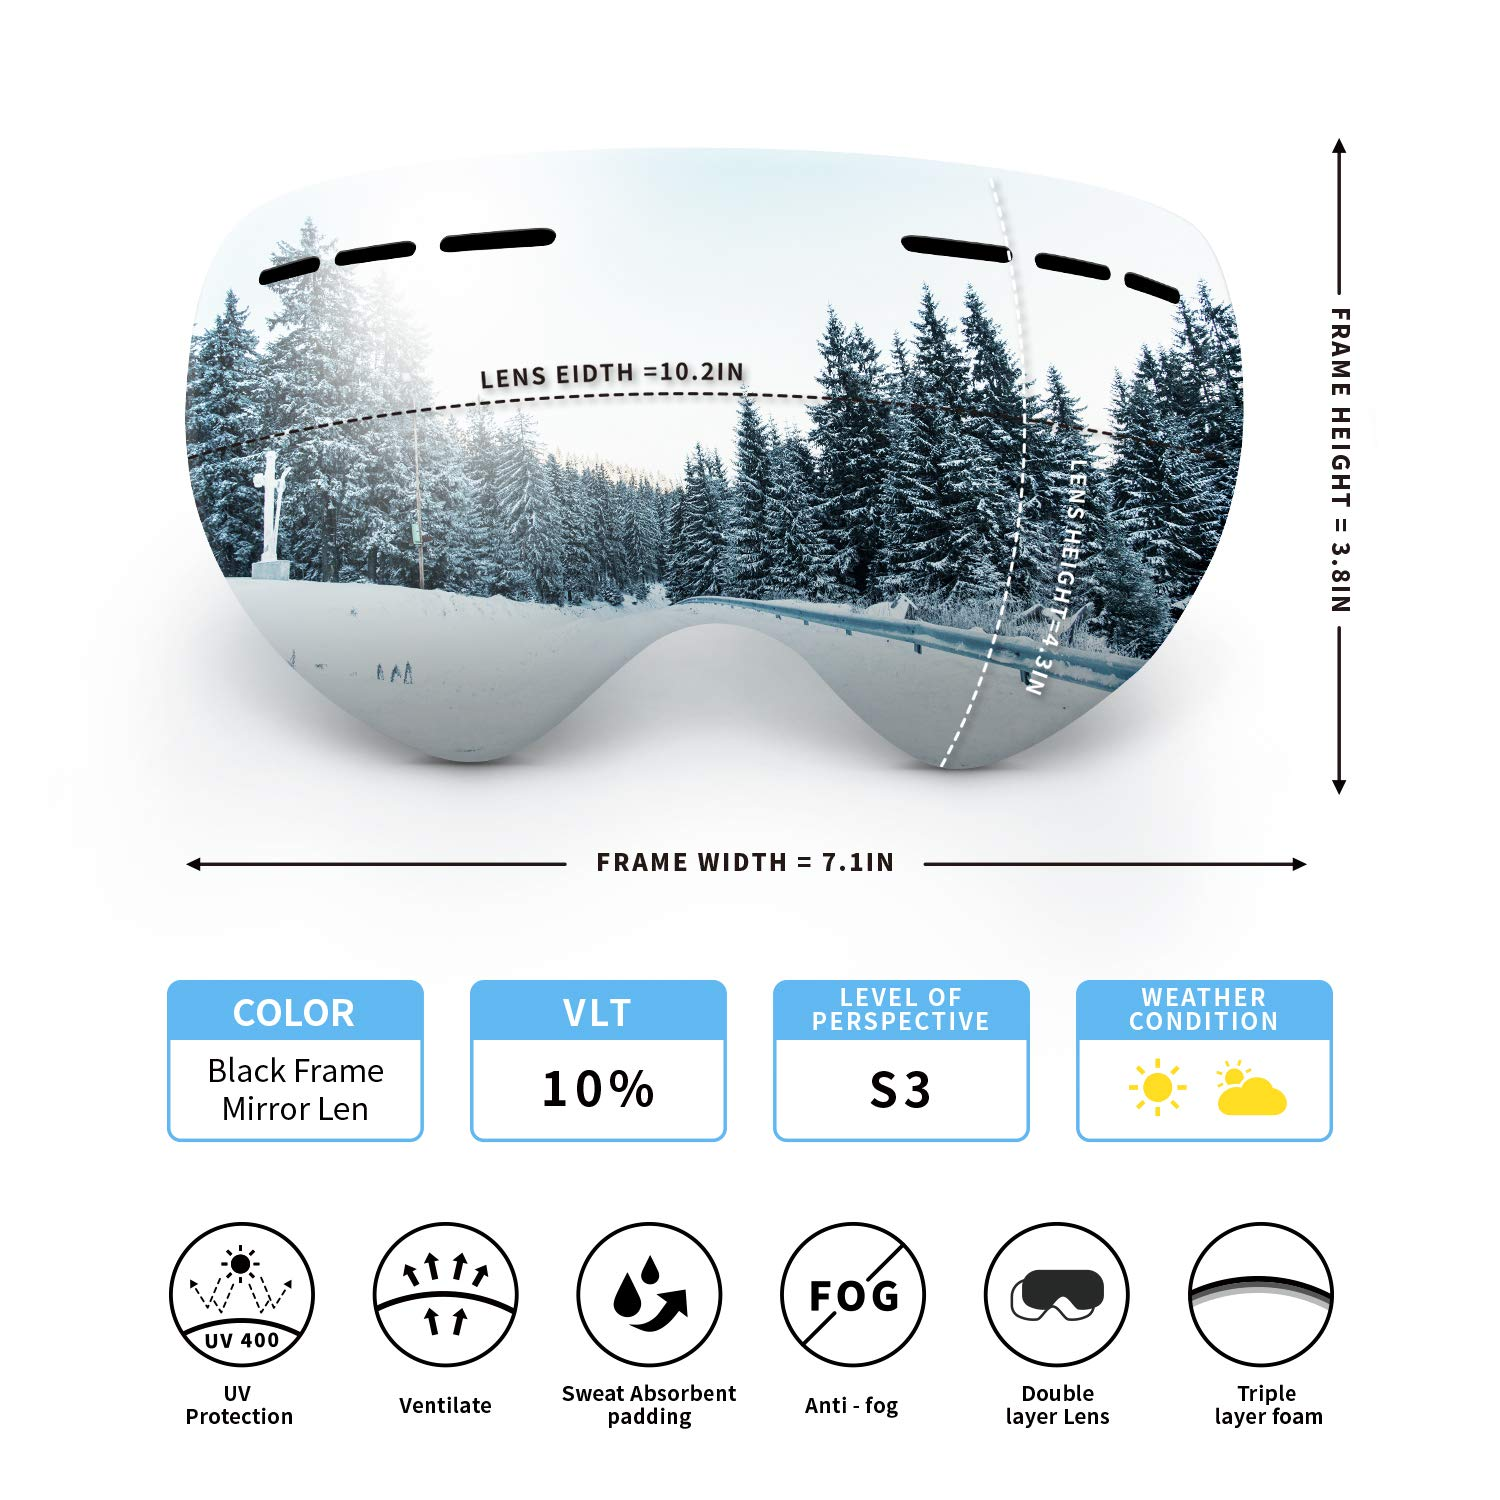 OBOSOE Ski Snowboard Snow Goggles, Interchangeable Lens 100 UV400 Protection Snow Goggles Adult Men,Women,Youth,Boys-Anti-Fog Wide Spherical Safety Goggles